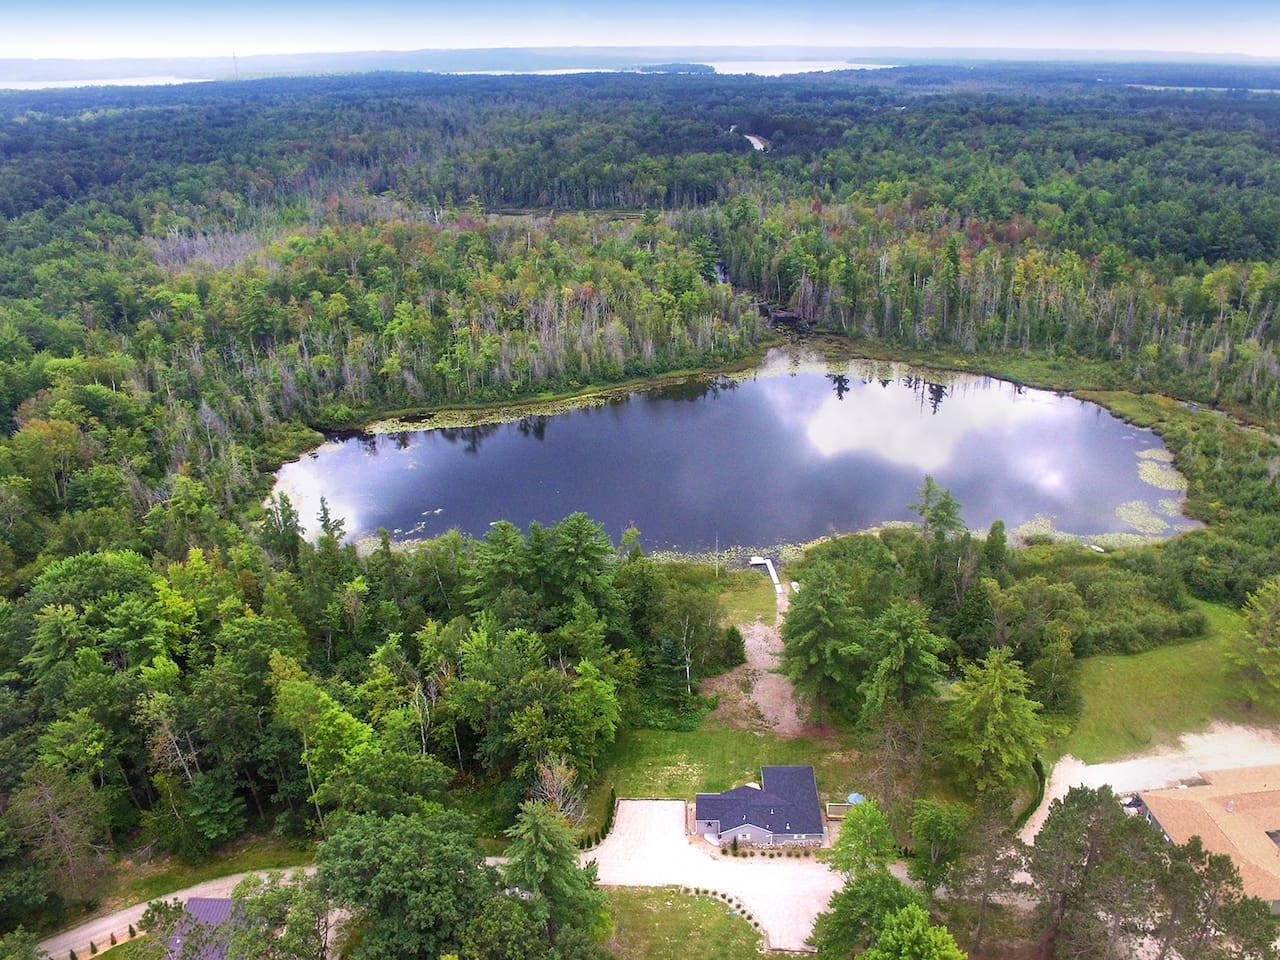 Lost Lake WOW what a picture! AND YES ITS A PRIVATE LAKE!